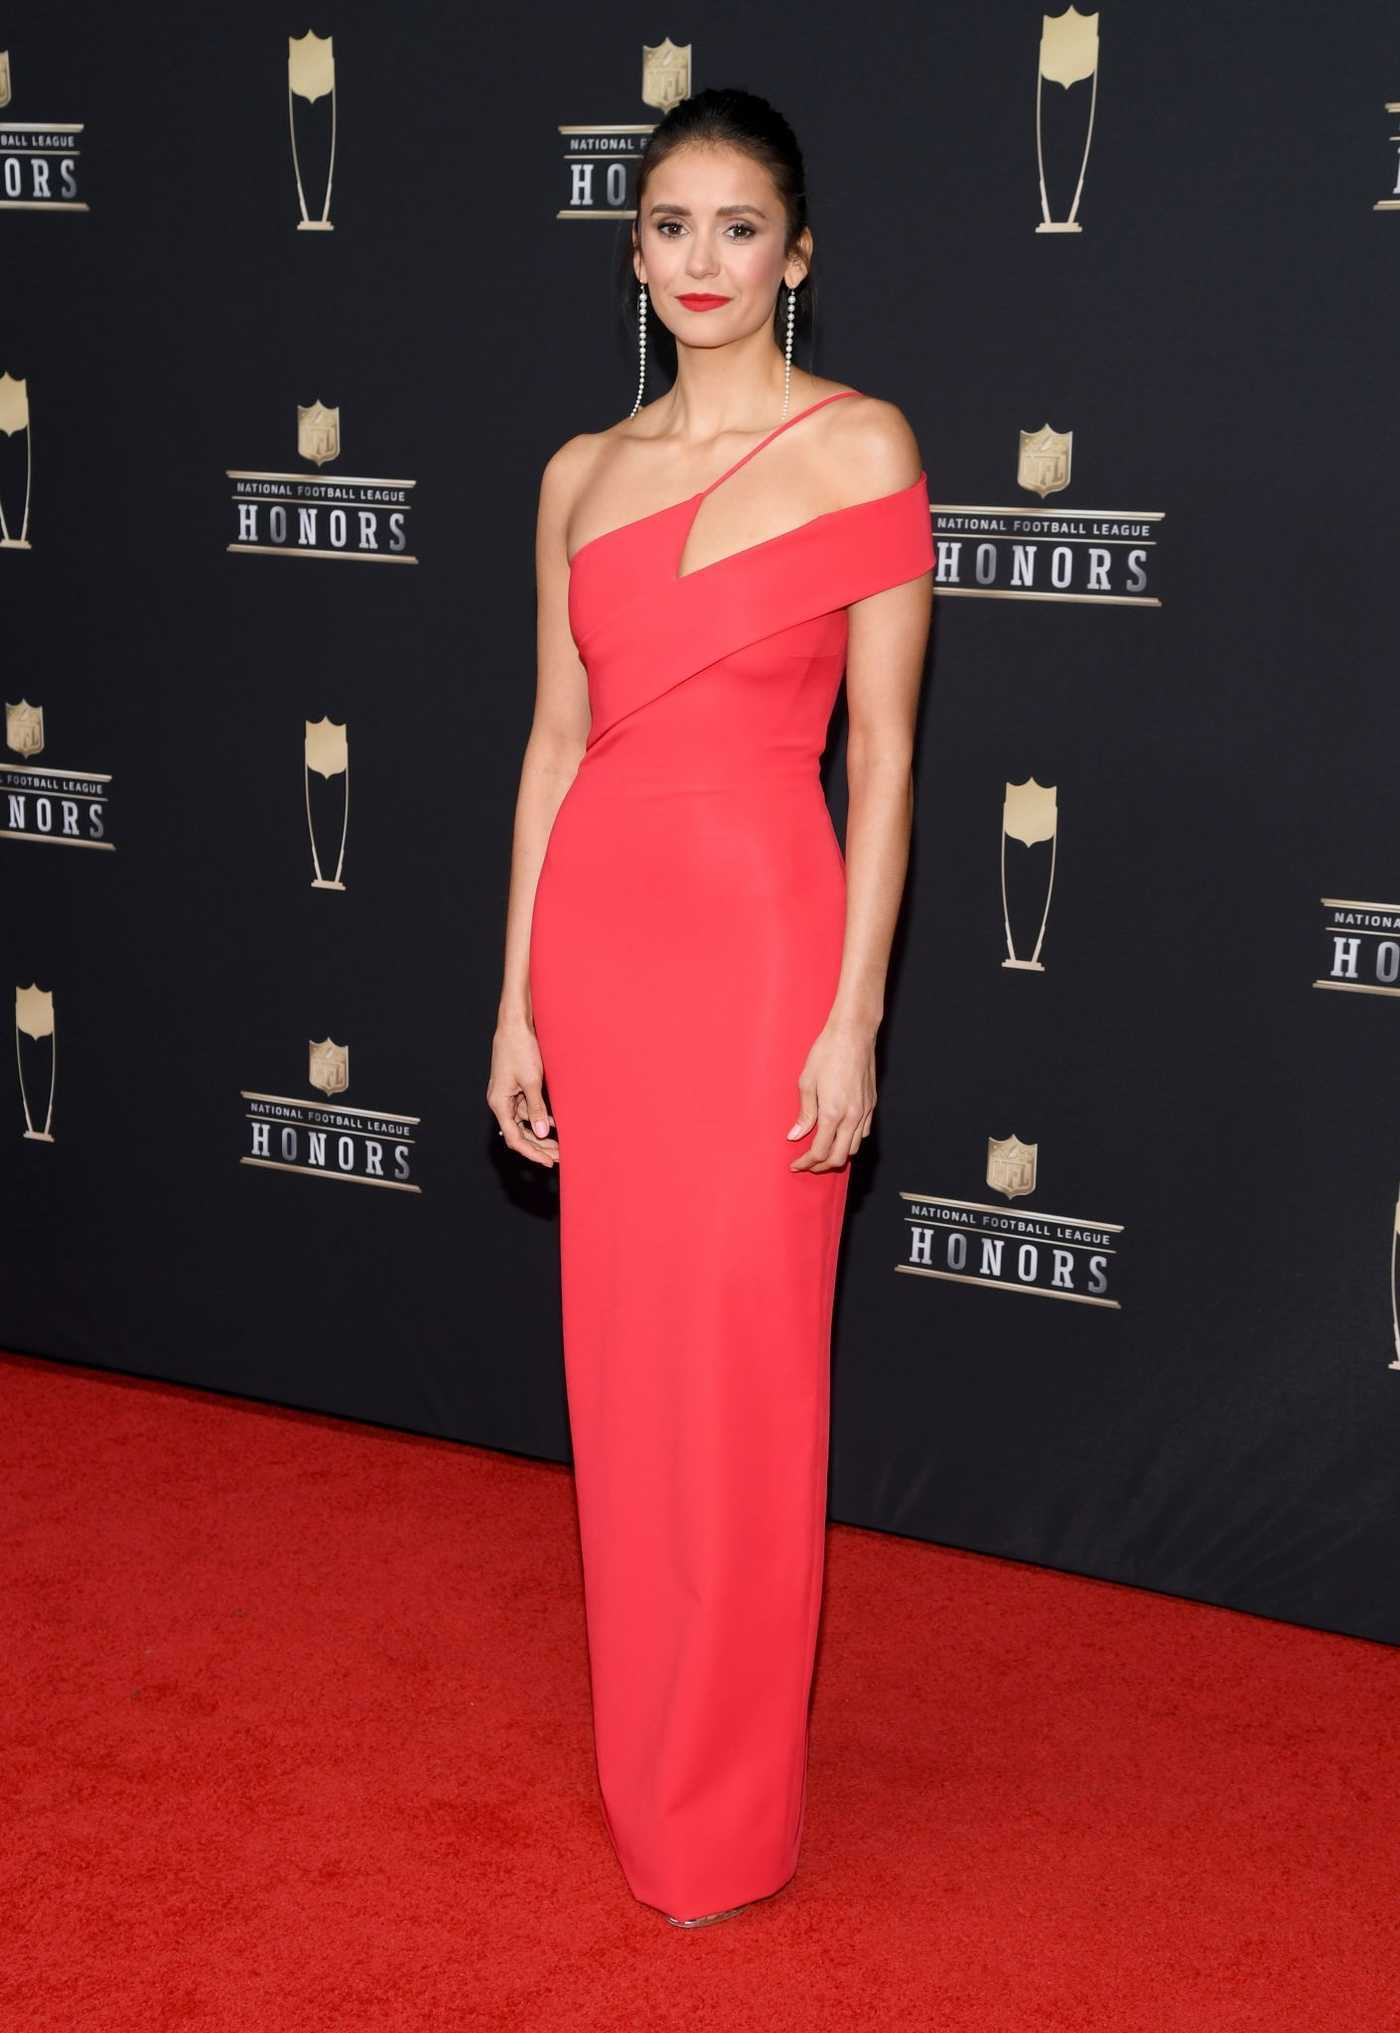 Nina Dobrev Attends the 8th Annual NFL Honors in Atlanta 02/02/2019